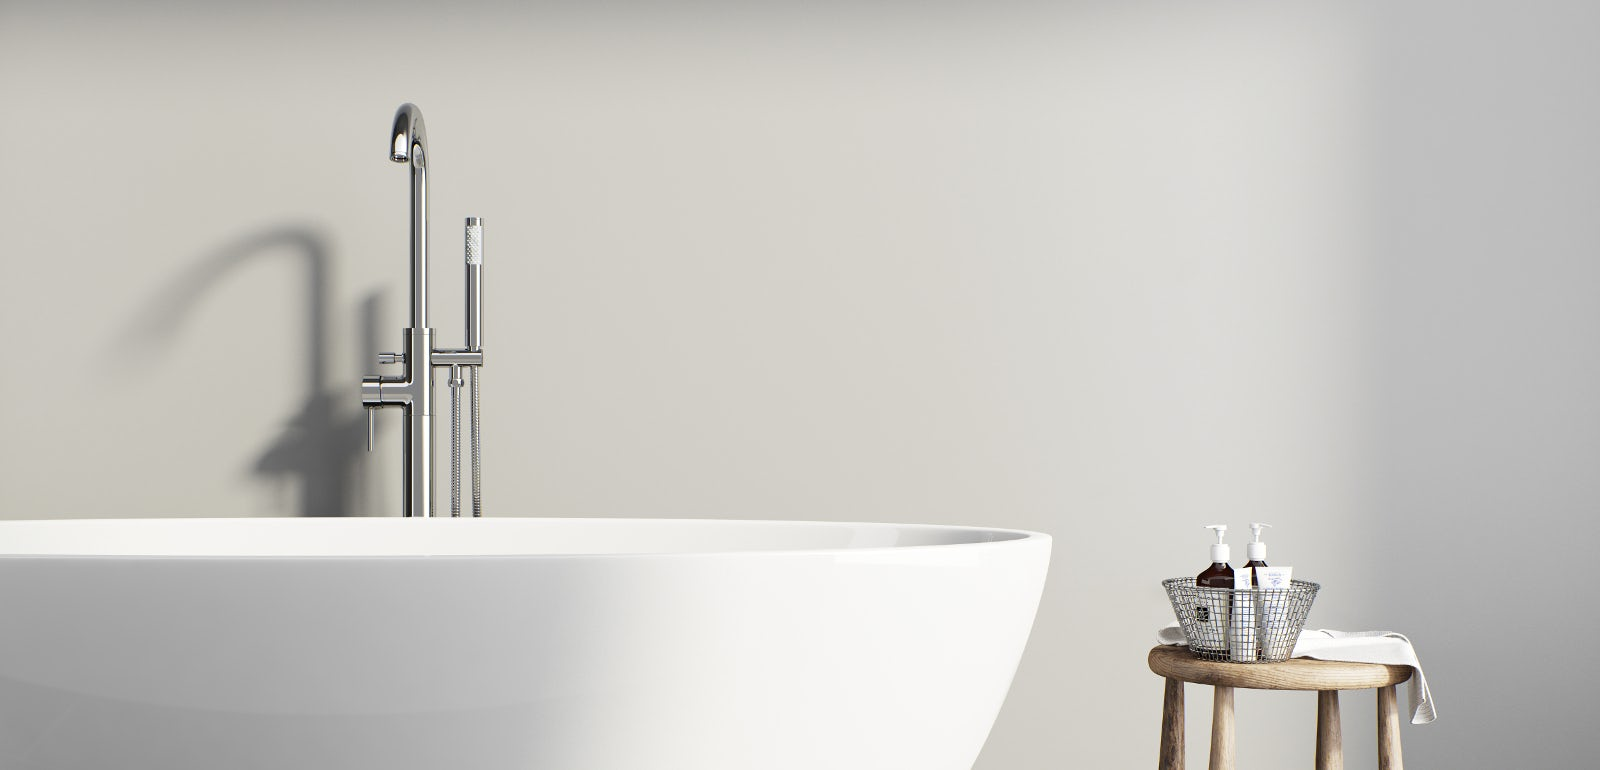 Tell steel baths good or bad. Or is it better to buy acrylic or cast iron 26